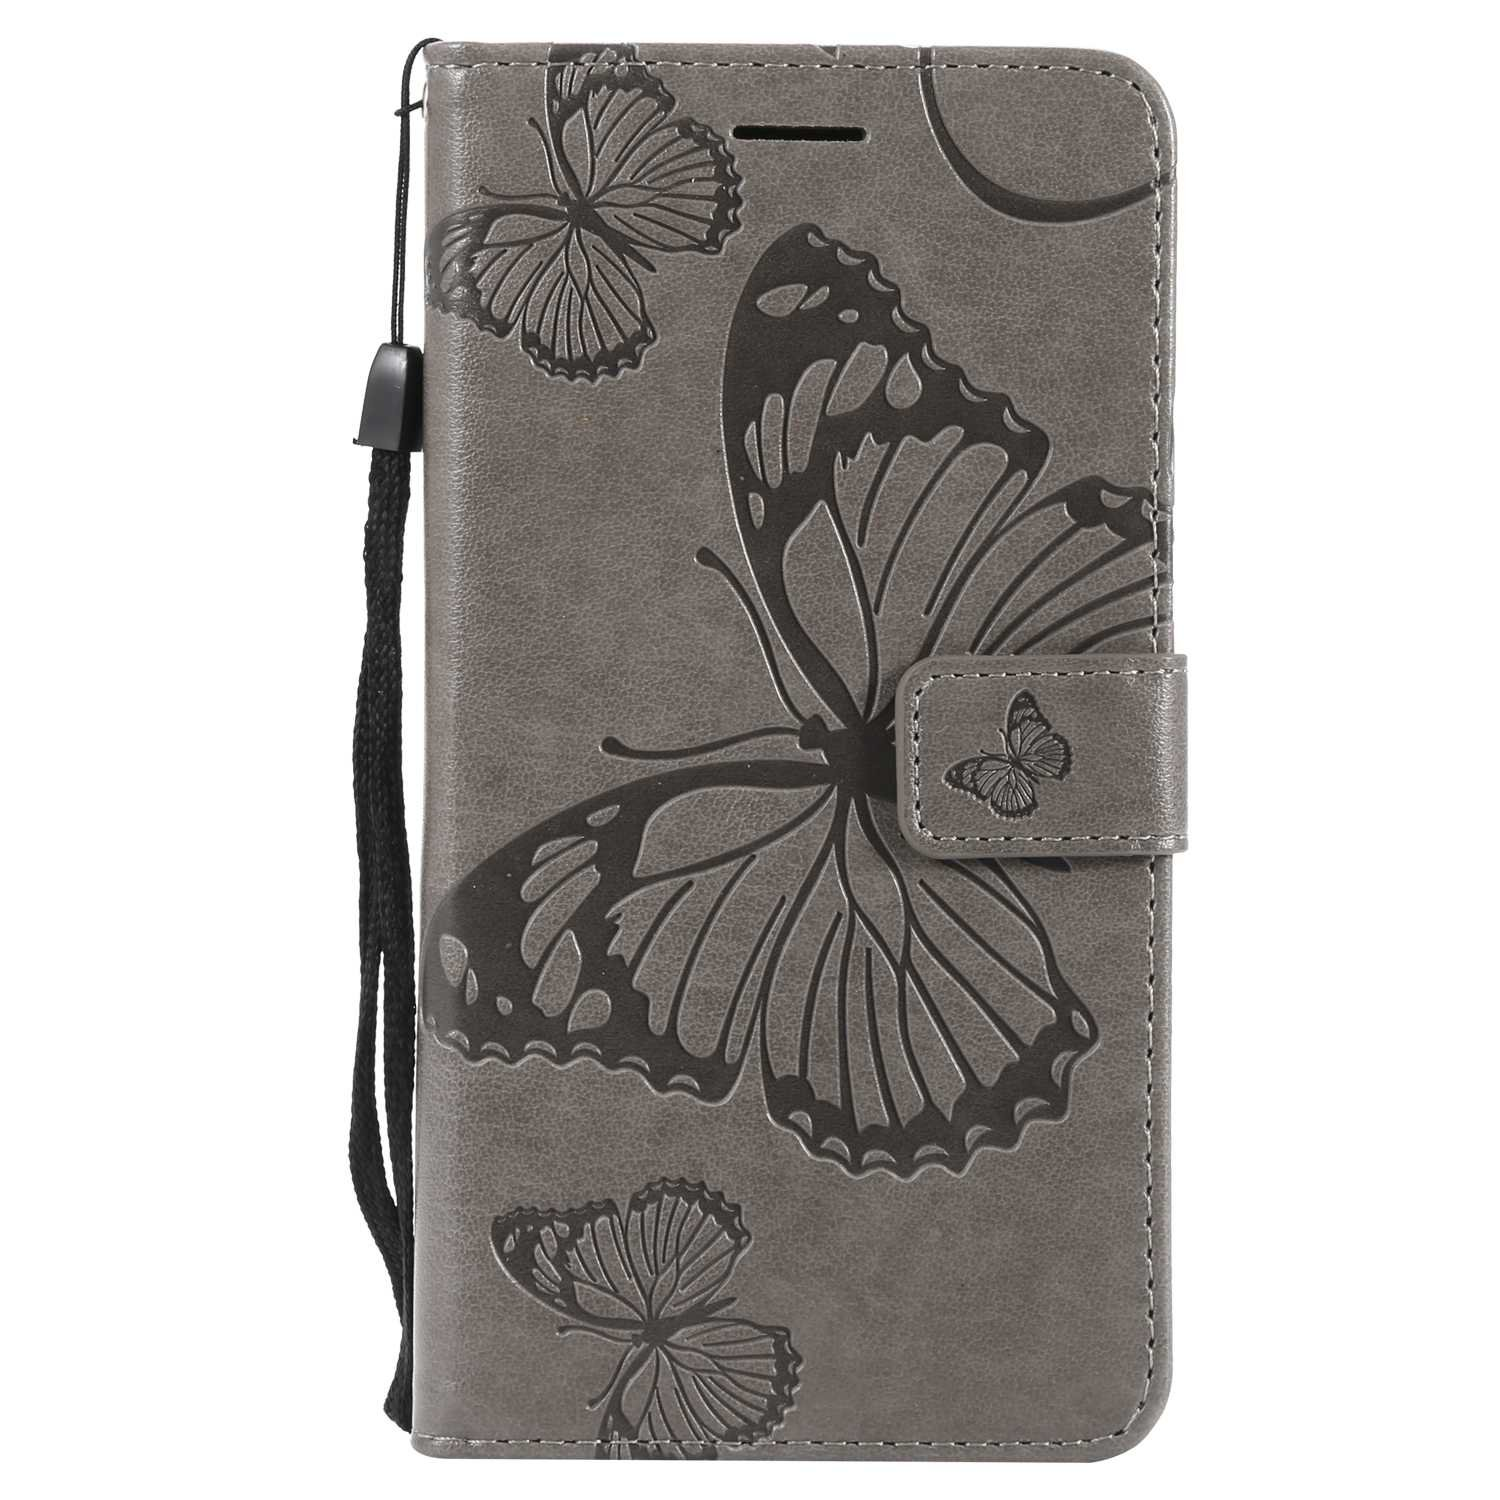 CUSKING Case for Samsung Galaxy J7 2016, Leather Flip Cover Magnetic Wallet Case with Butterfly Embossed Design, Case with Card Holders and Kickstand - Grey